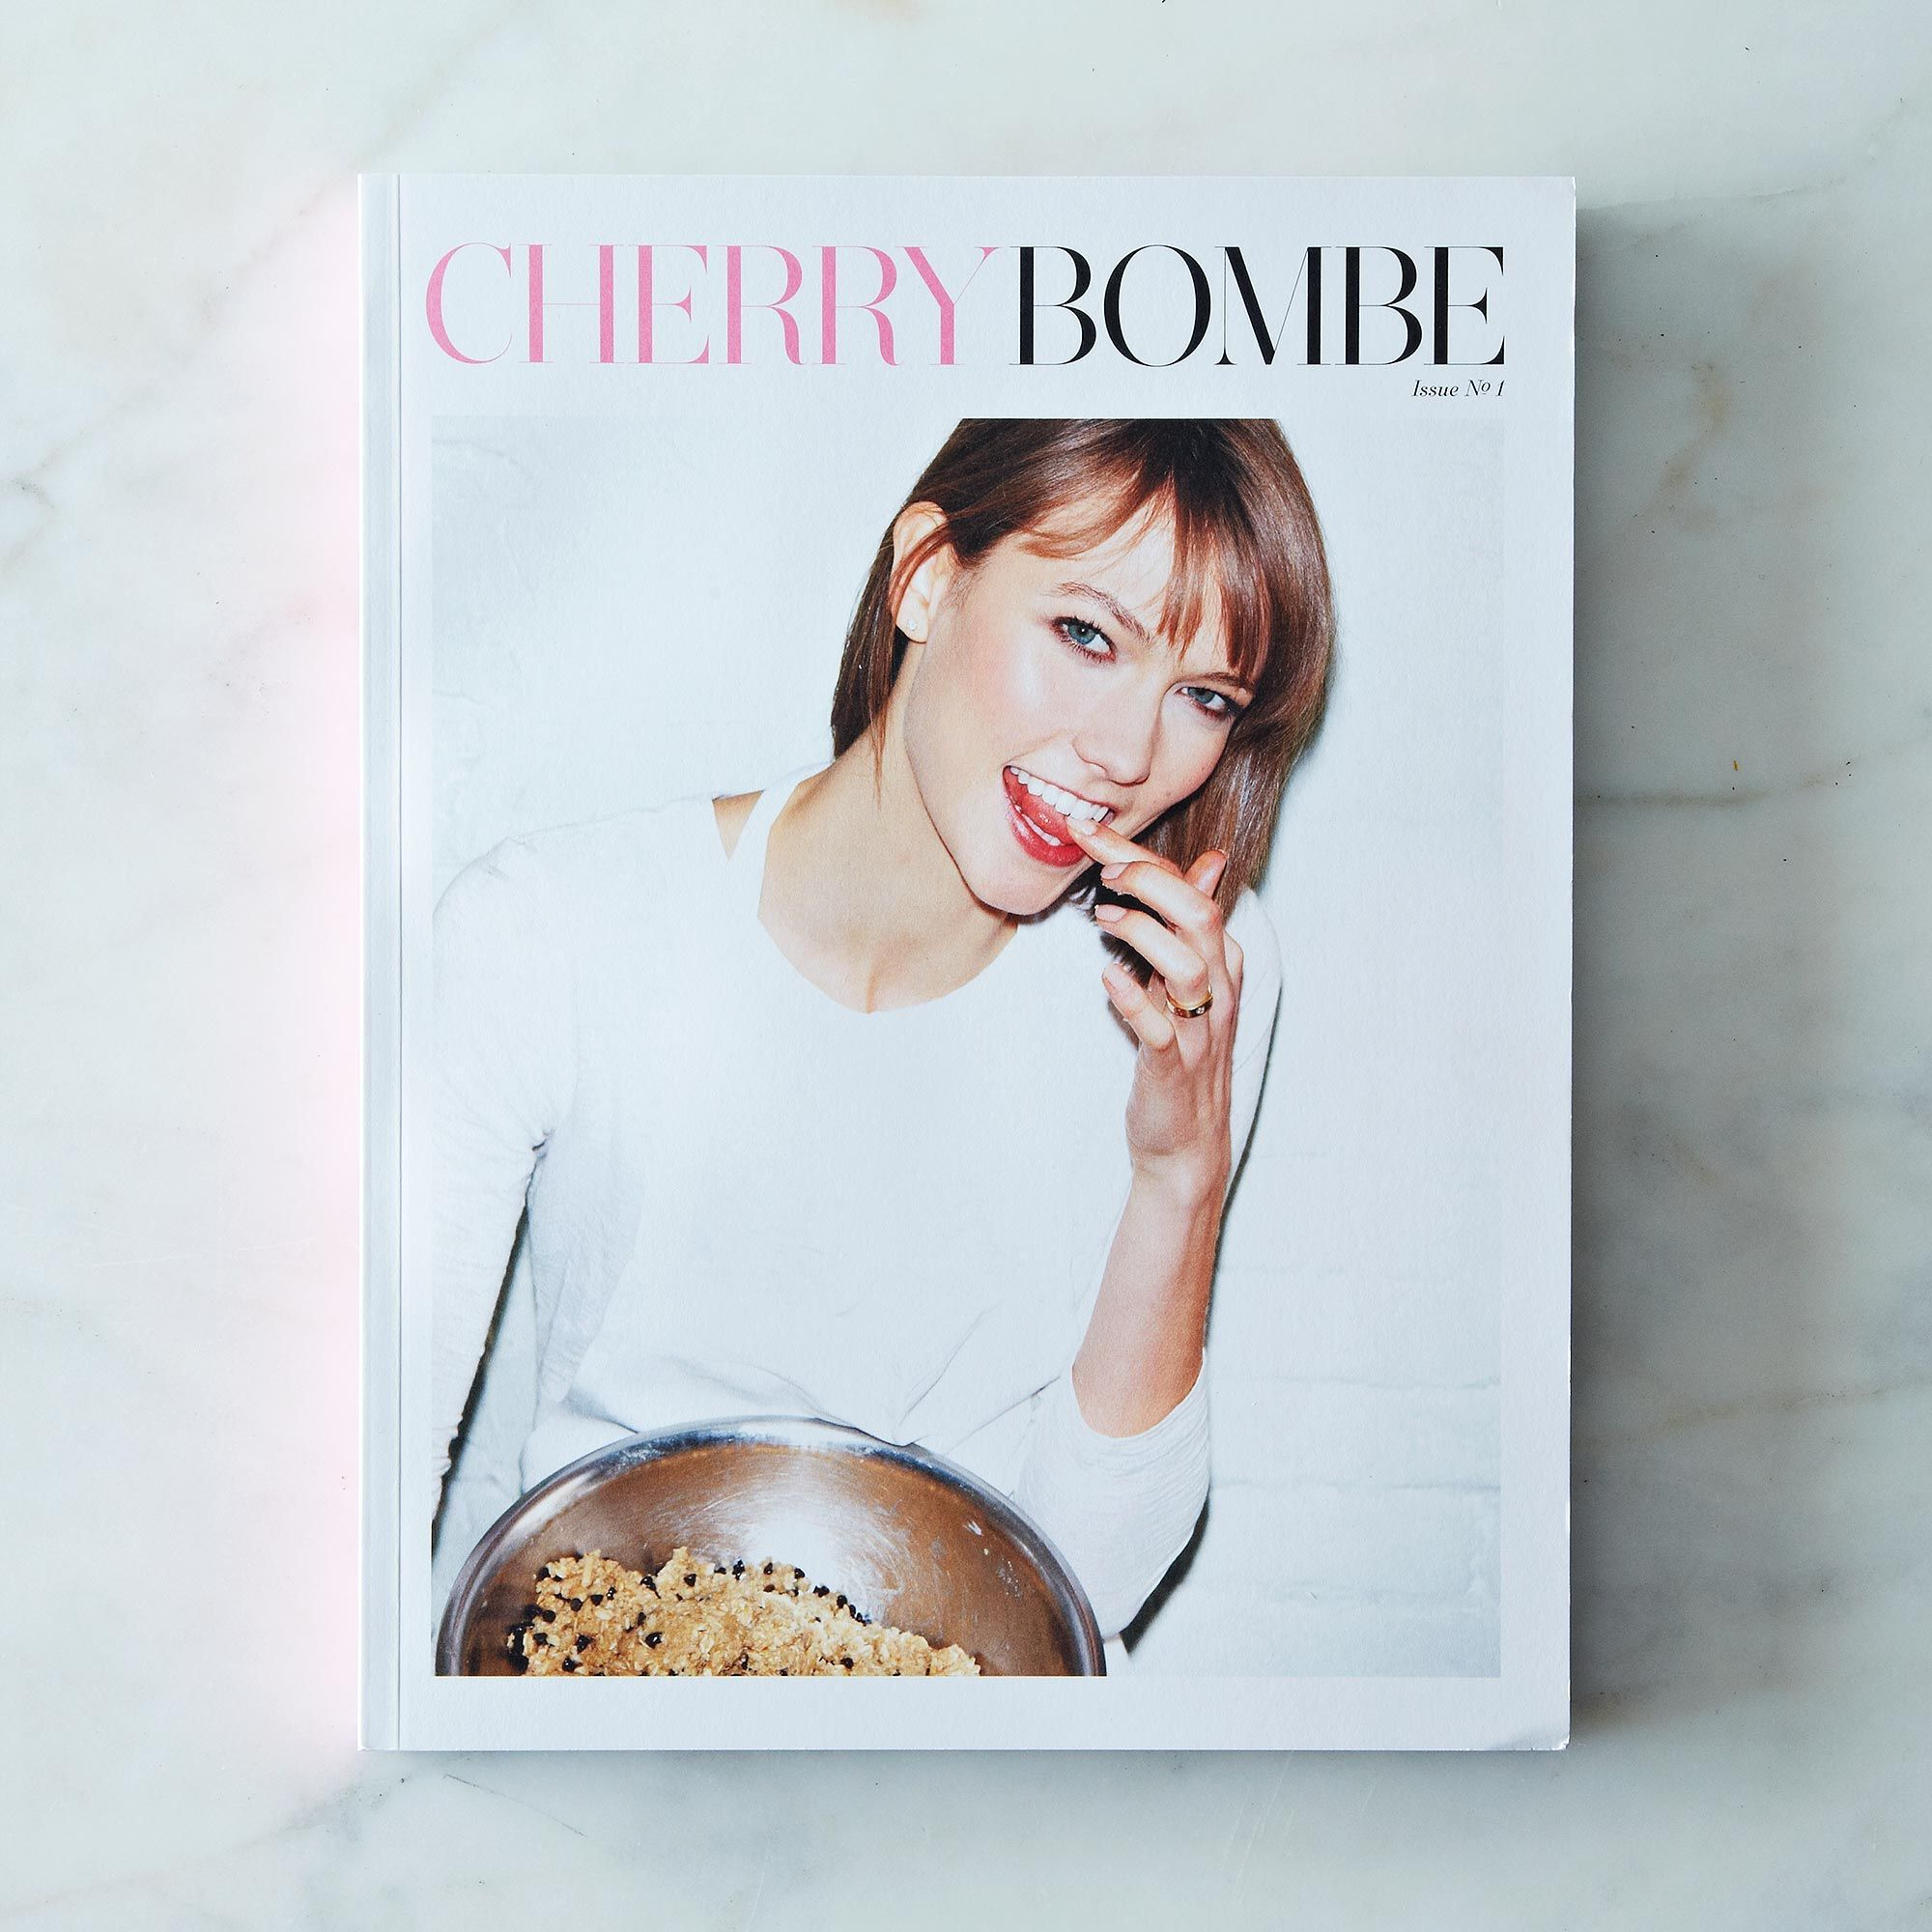 C32b9116 a0f5 11e5 a190 0ef7535729df  2014 0109 cherry bombe issue 1 021